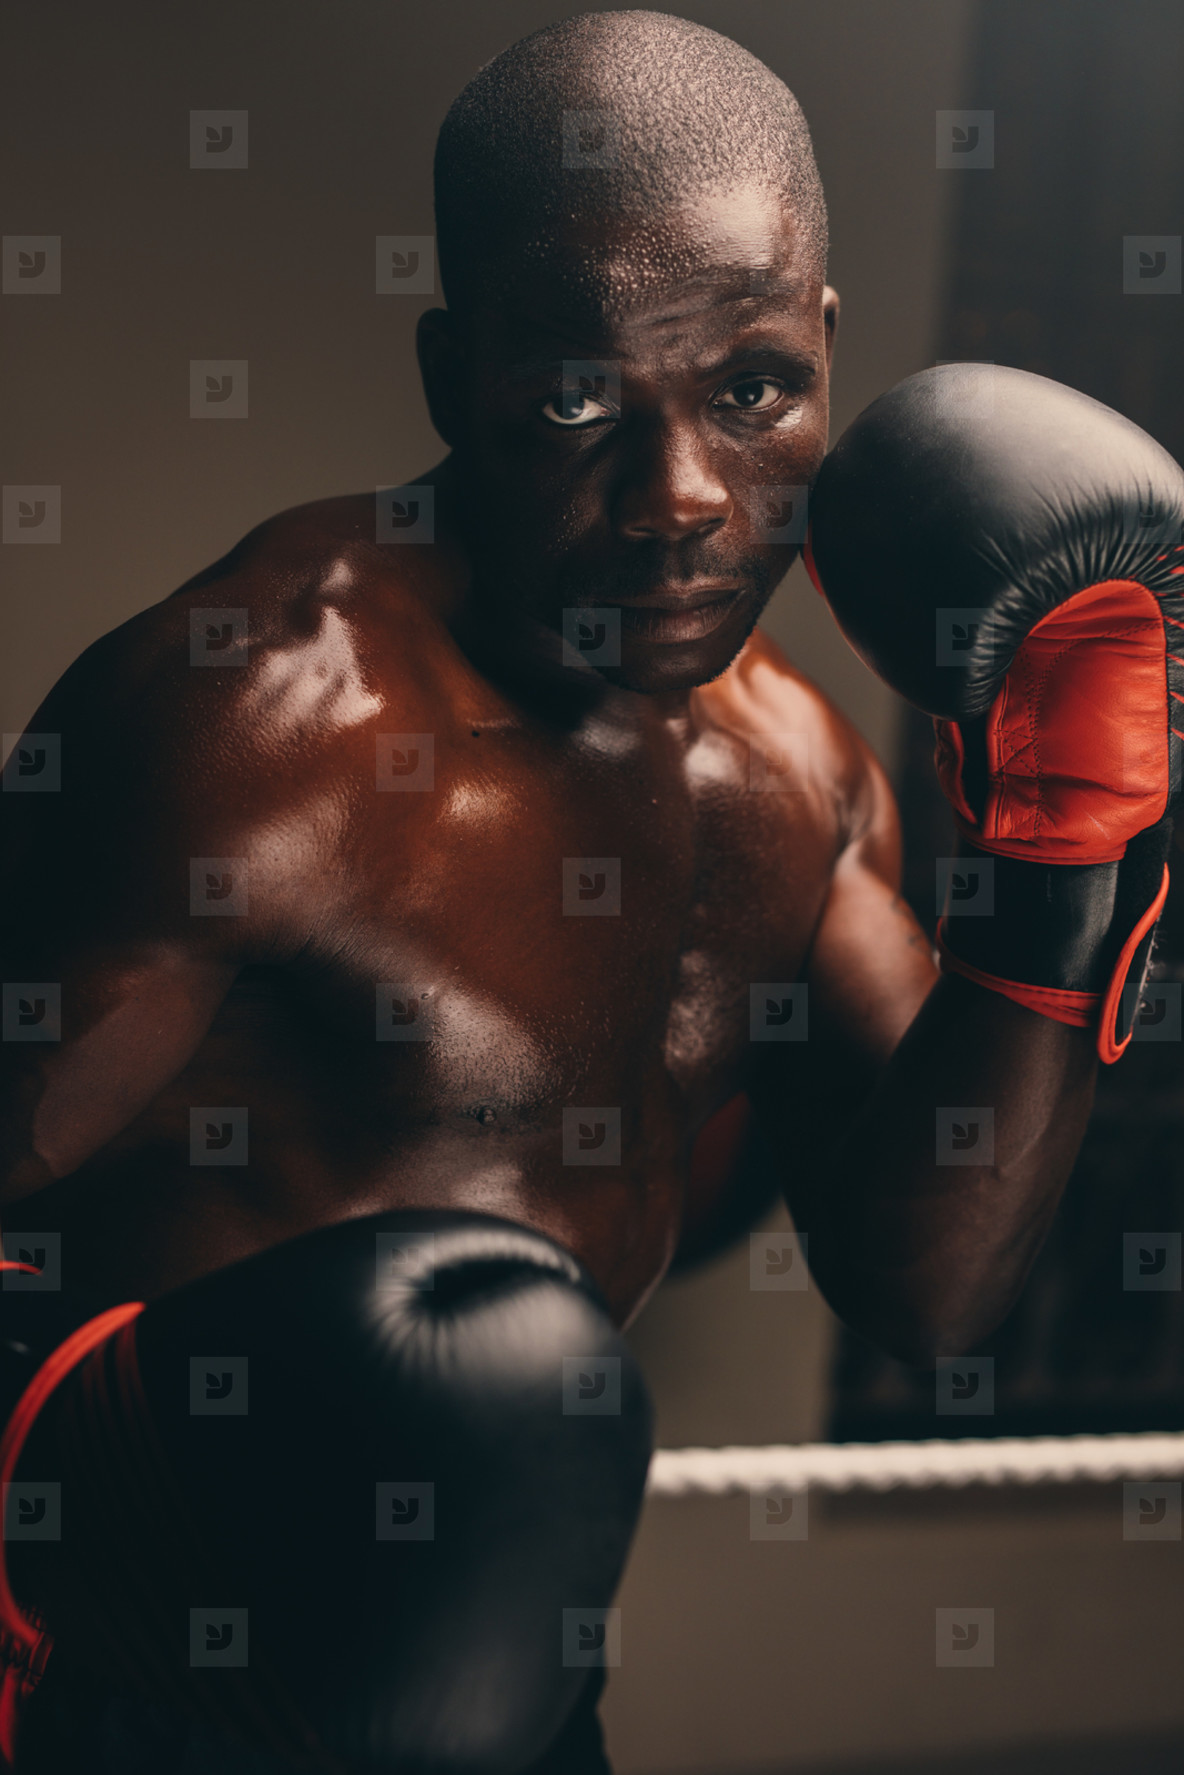 Tough young boxer with gloves up